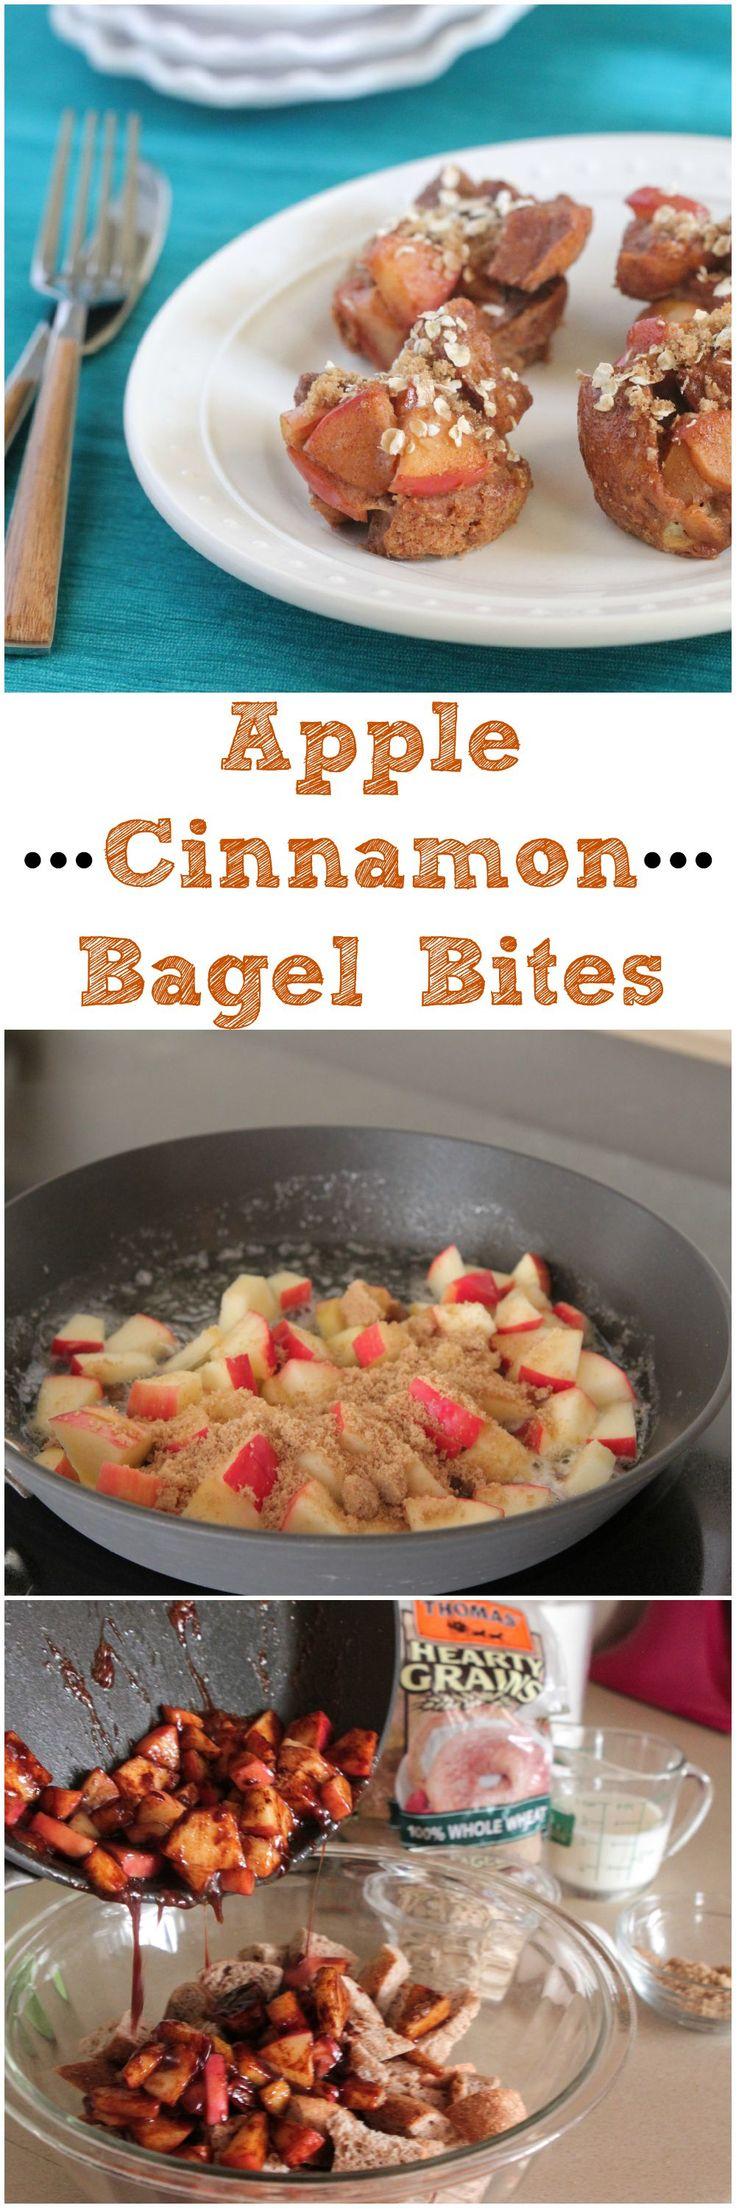 Apple Cinnamon Bagel Bites #breakfast #snack #recipe